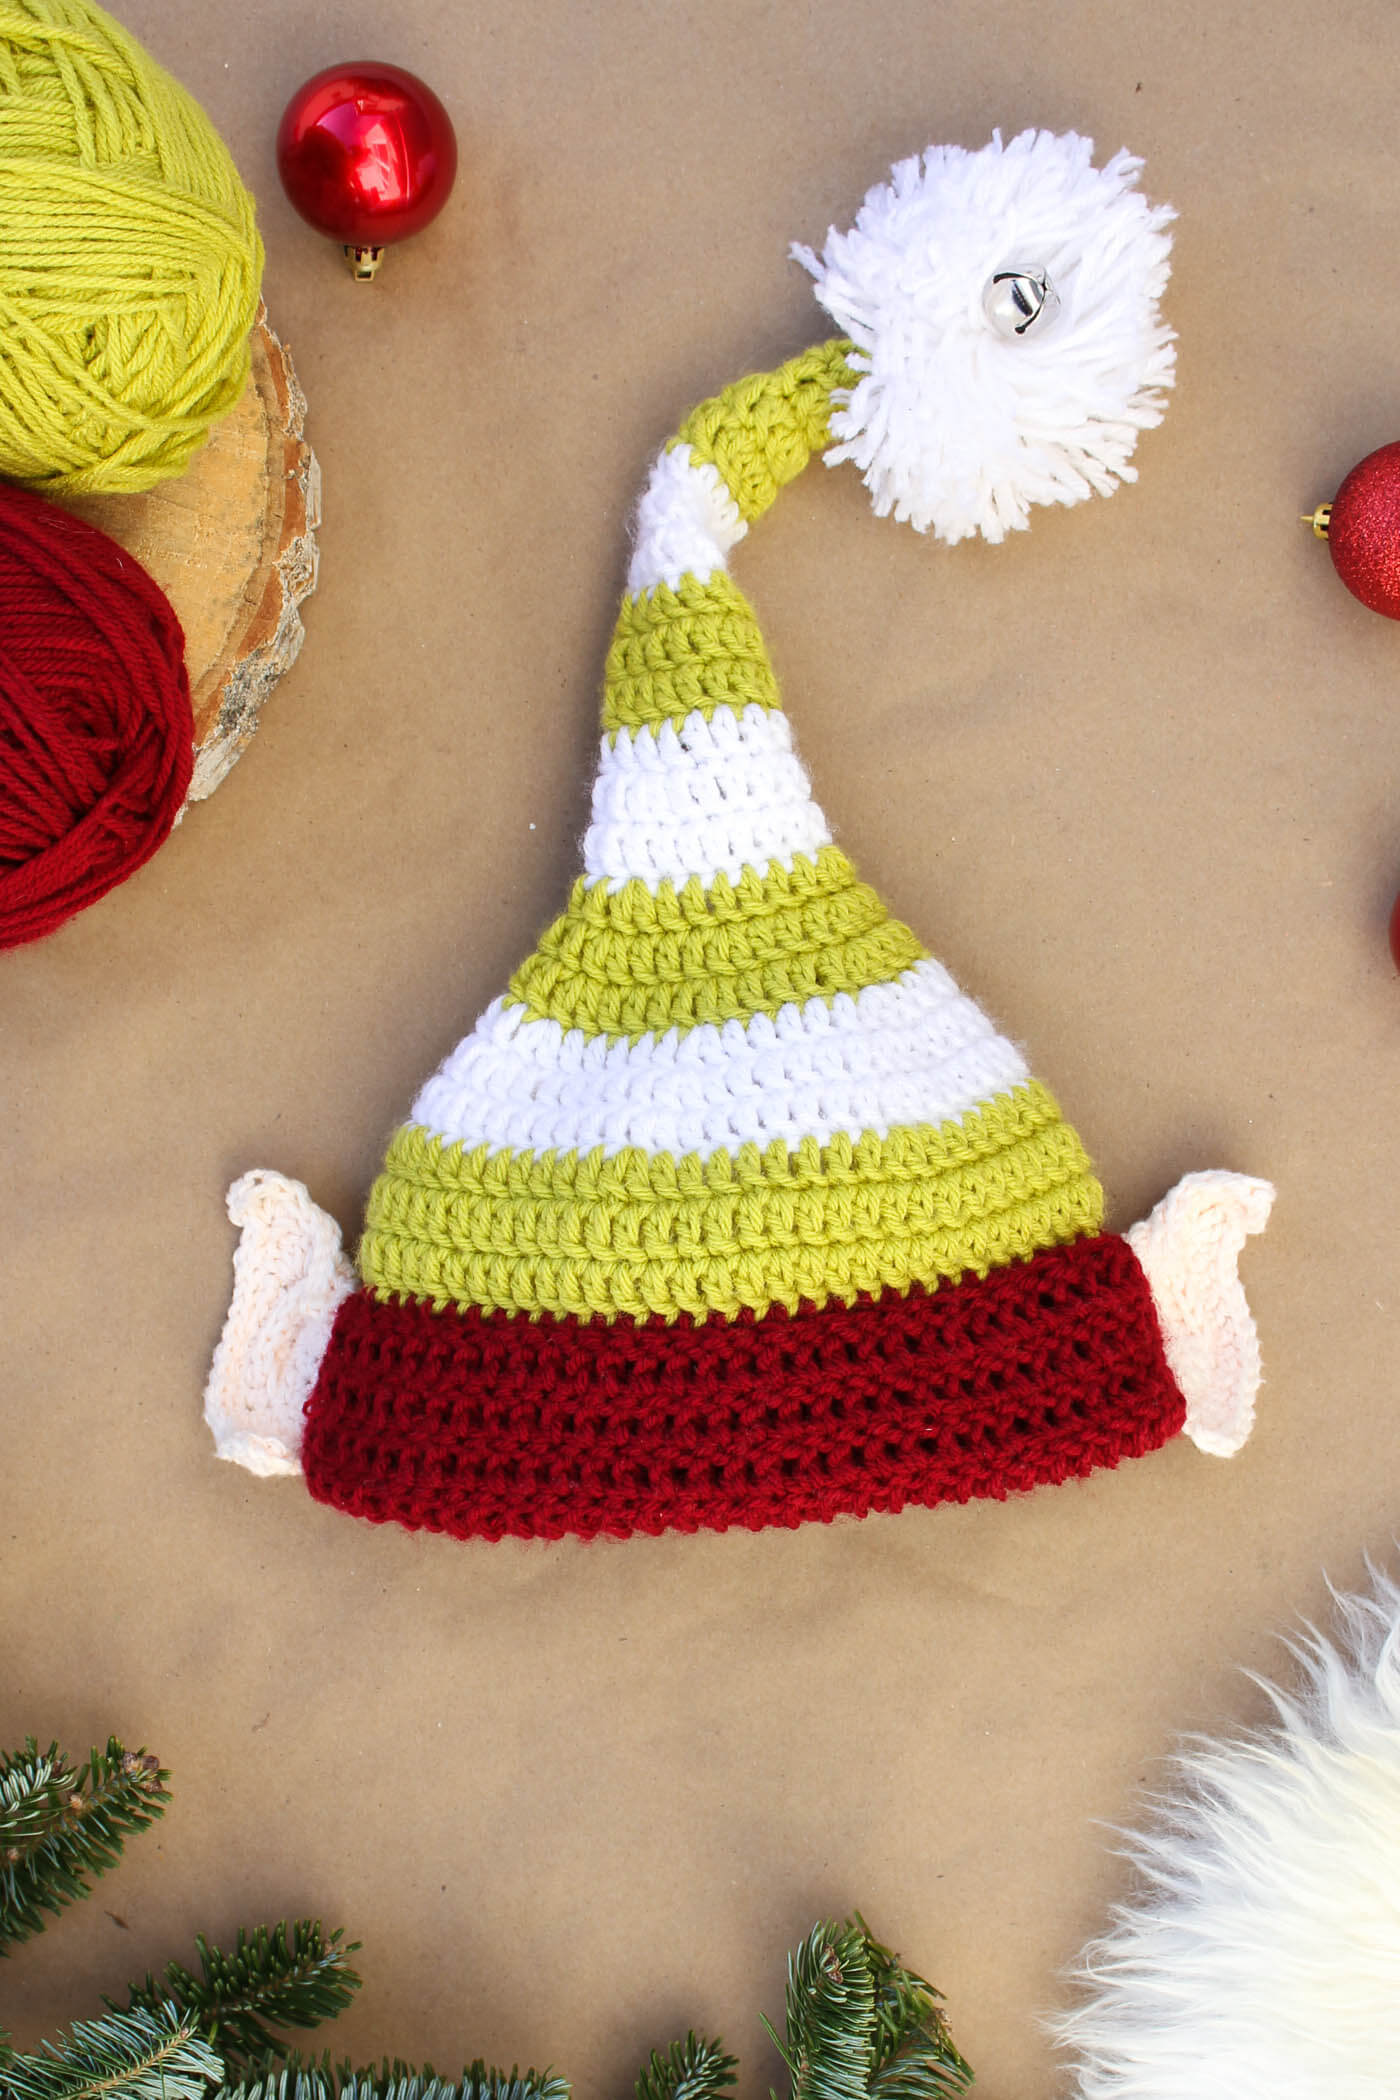 Free crochet elf hat pattern with ears! Make one for each member of the family. Perfect Christmas photo prop idea. Free pattern sizes include 0-3 months (newboarn), 3-6 months (baby), 6-12 months, toddler/preschooler, child and adult. Click to see full pattern. | MakeAndDoCrew.com